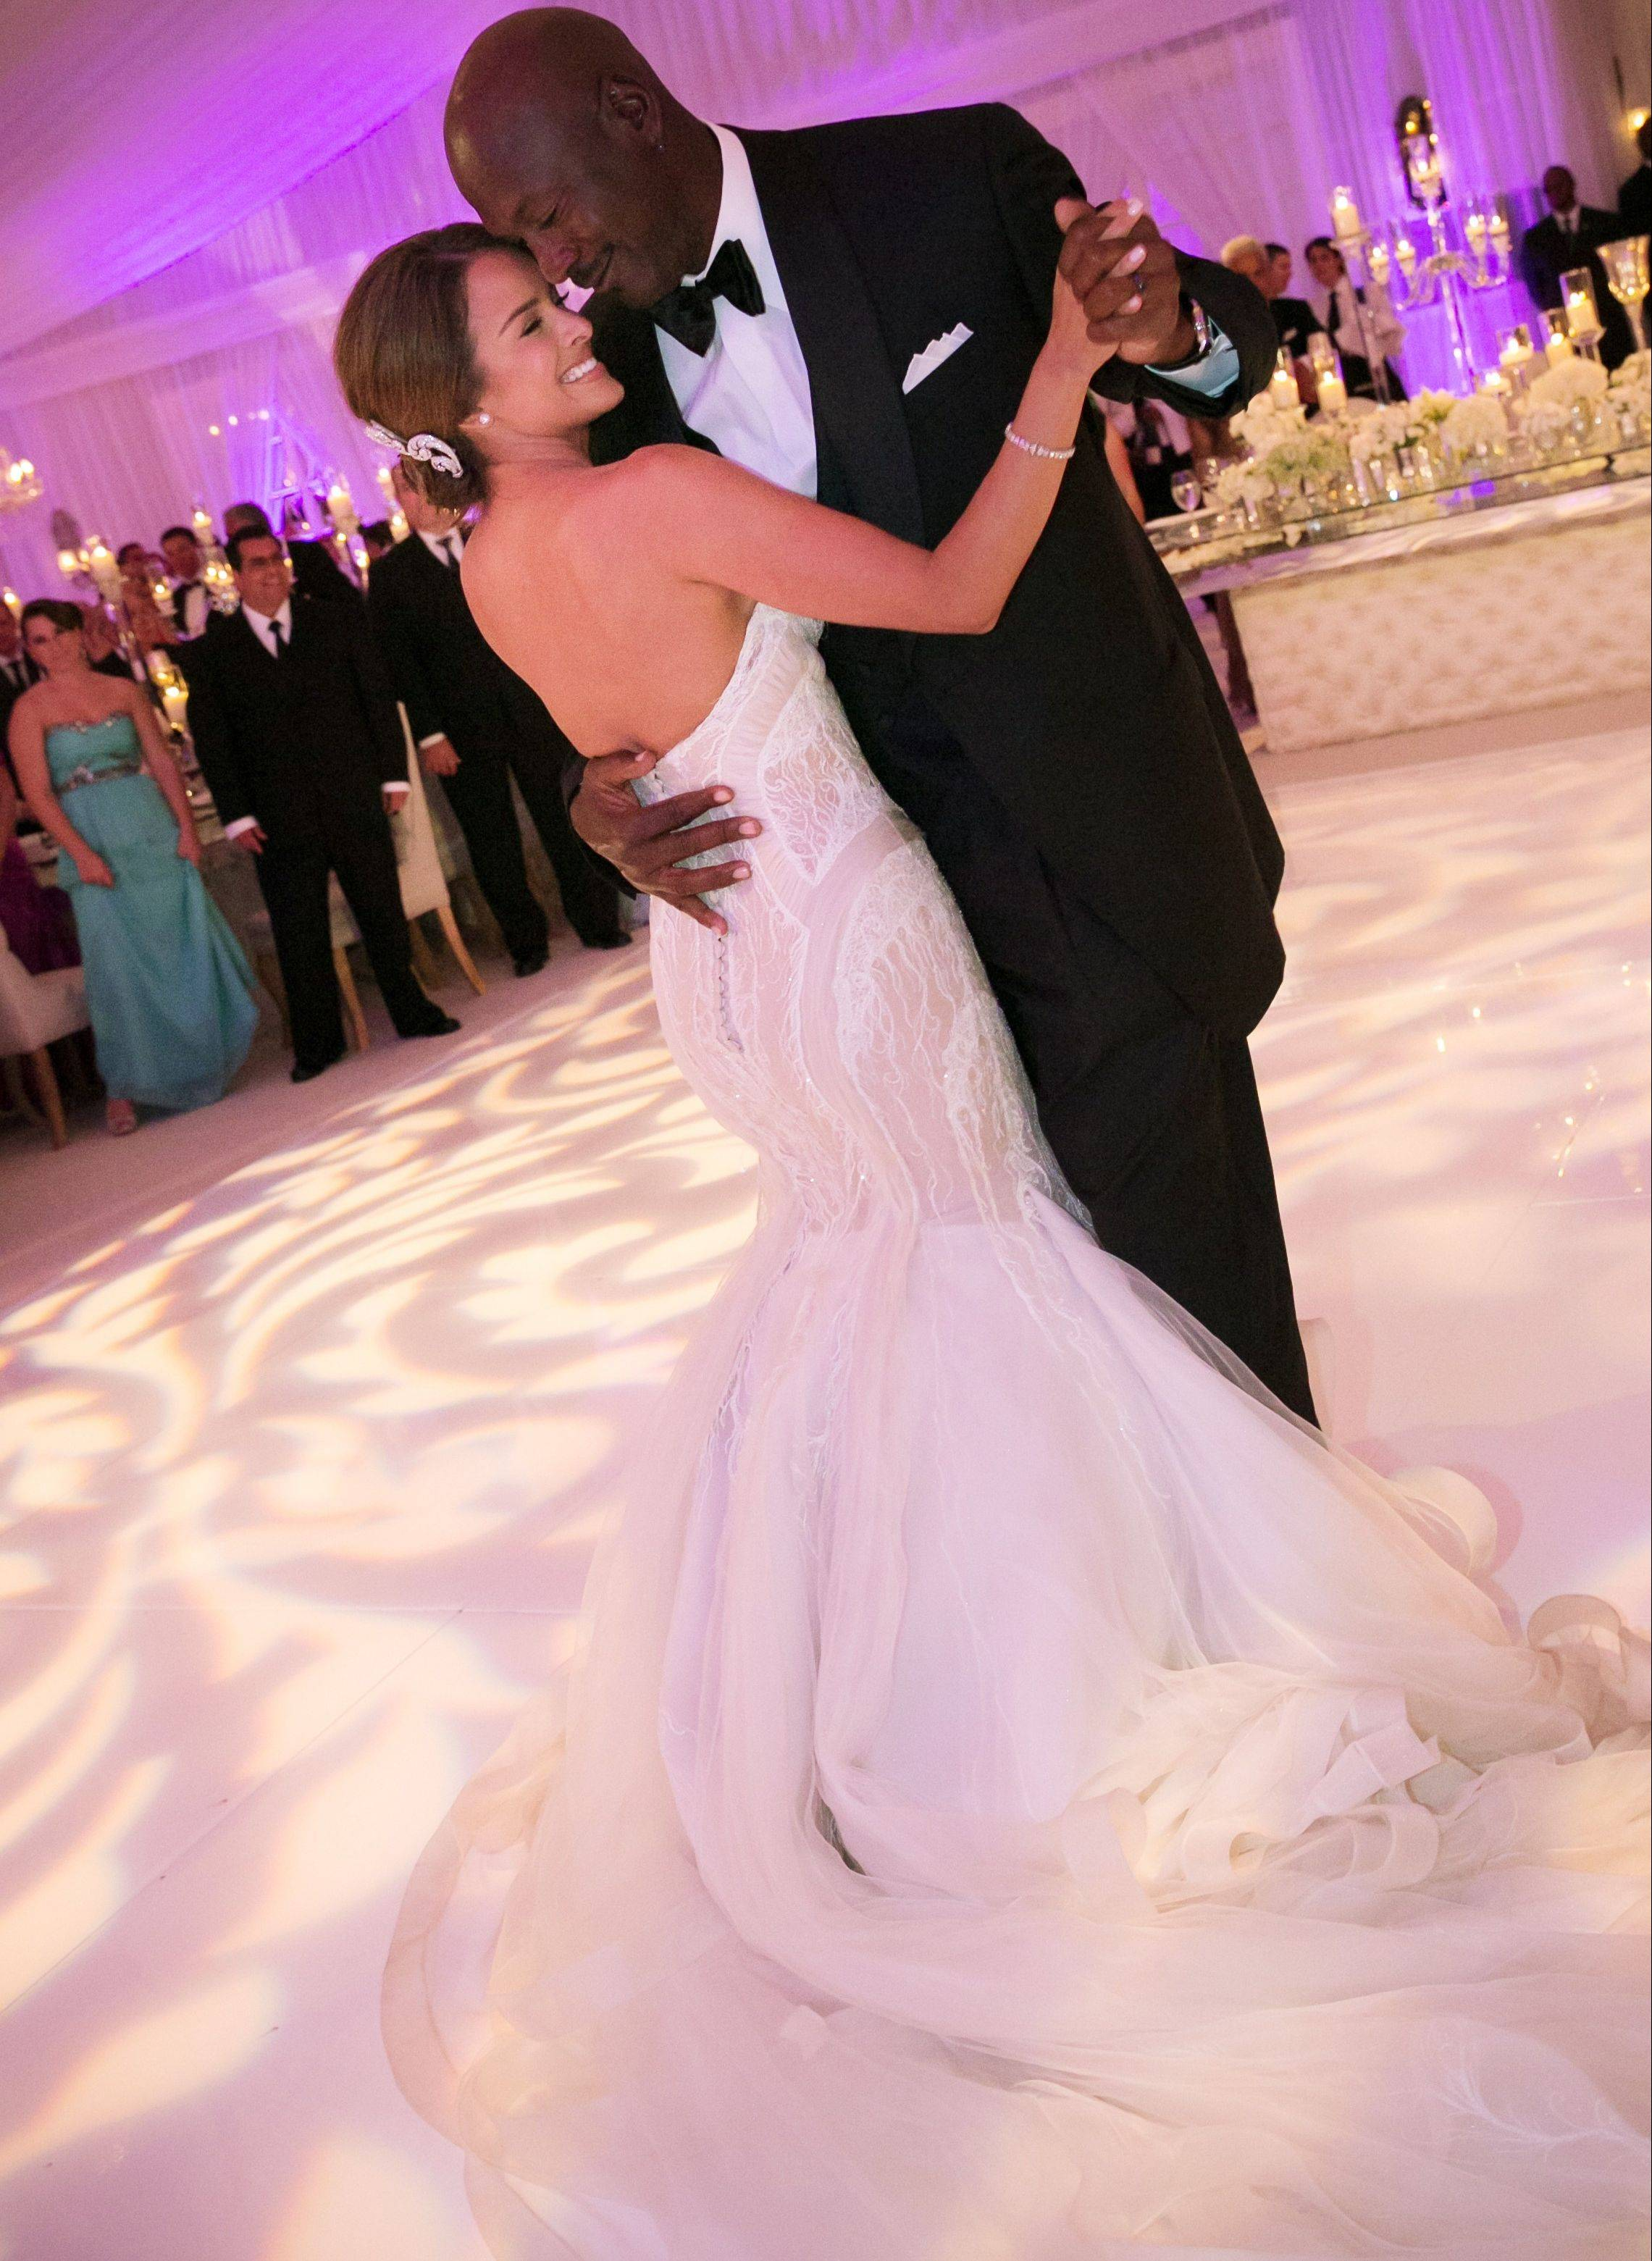 In this photo provided by JUMP.DC, Charlotte Bobcats owner Michael Jordan dances with his bride Yvette Prieto during their wedding reception Saturday night at the Bear�s Club in Jupiter, Fla. More than 300 guests were in attendance, including Tiger Woods, Patrick Ewing and Ahmad Rashad, Jordan�s manager Estee Portnoy told The Associated Press on Sunday.